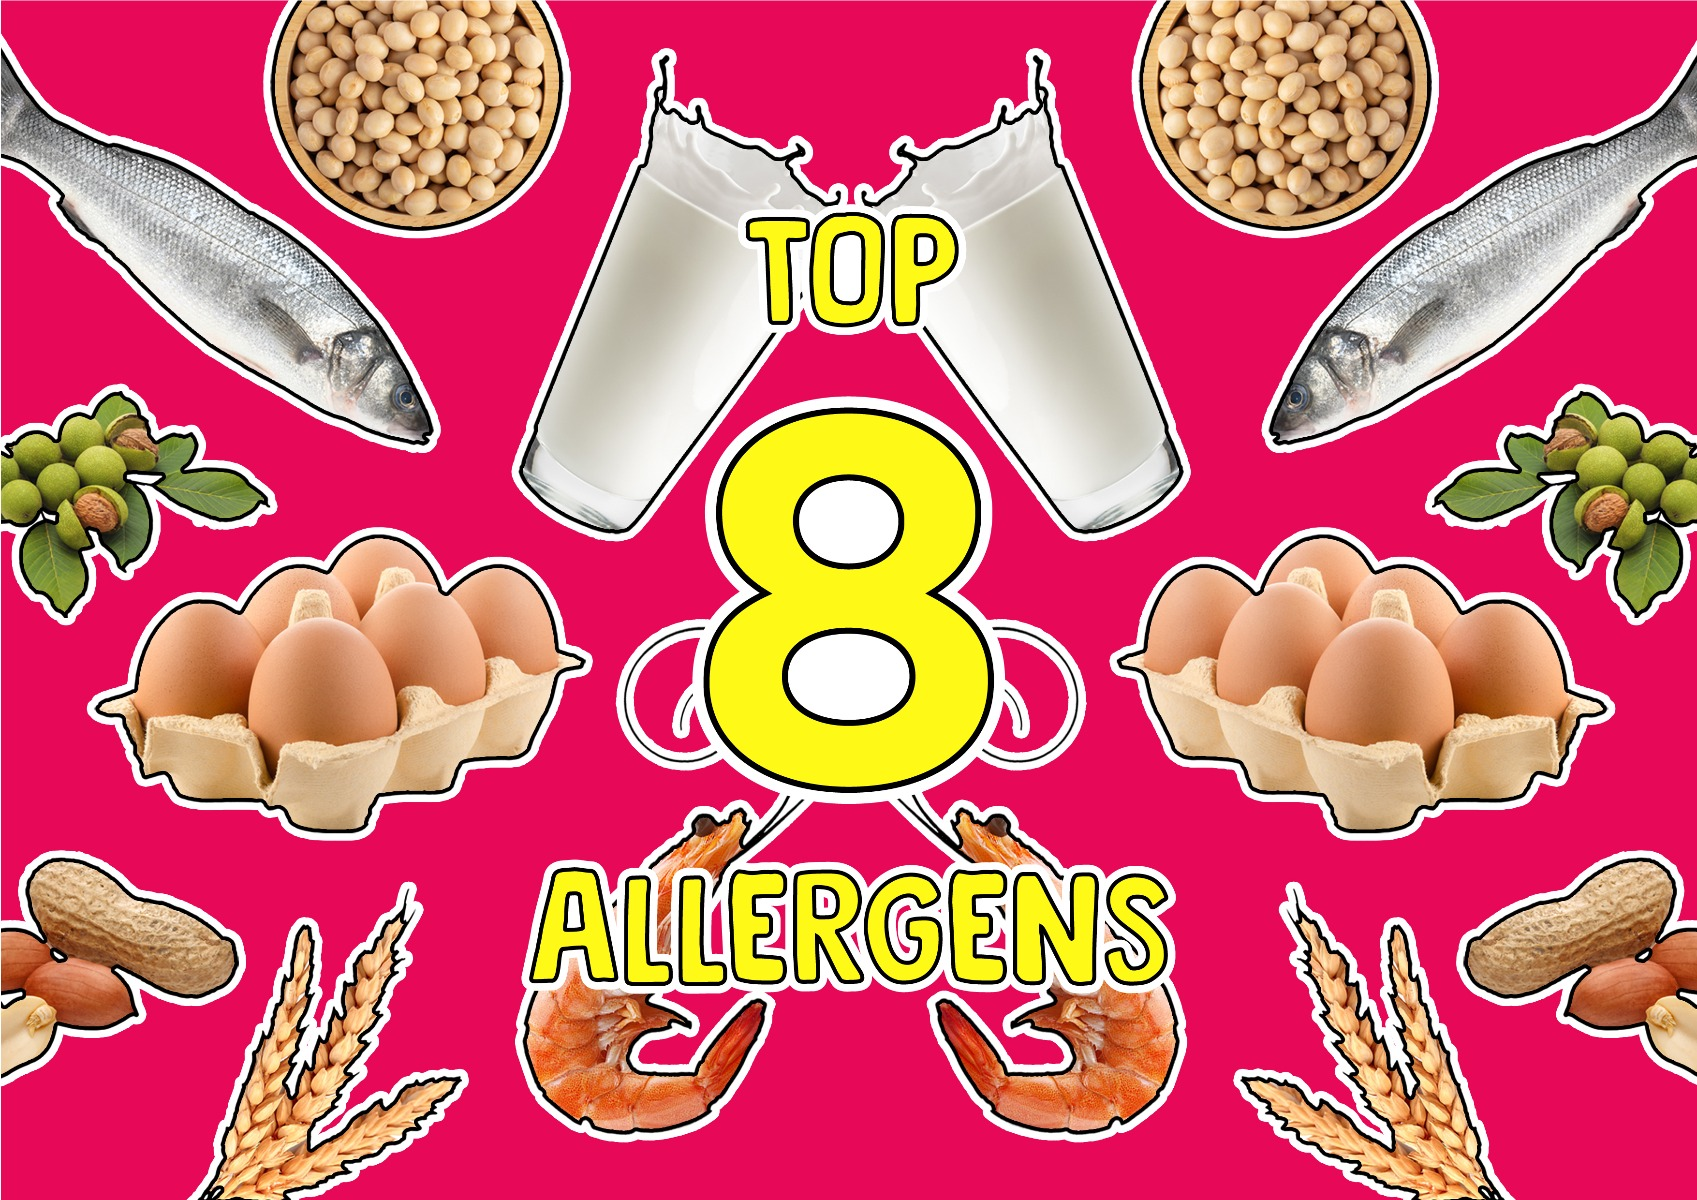 Top food allergens: dairy, soy, egg, wheat, peanuts, tree nuts, fish and shellfish